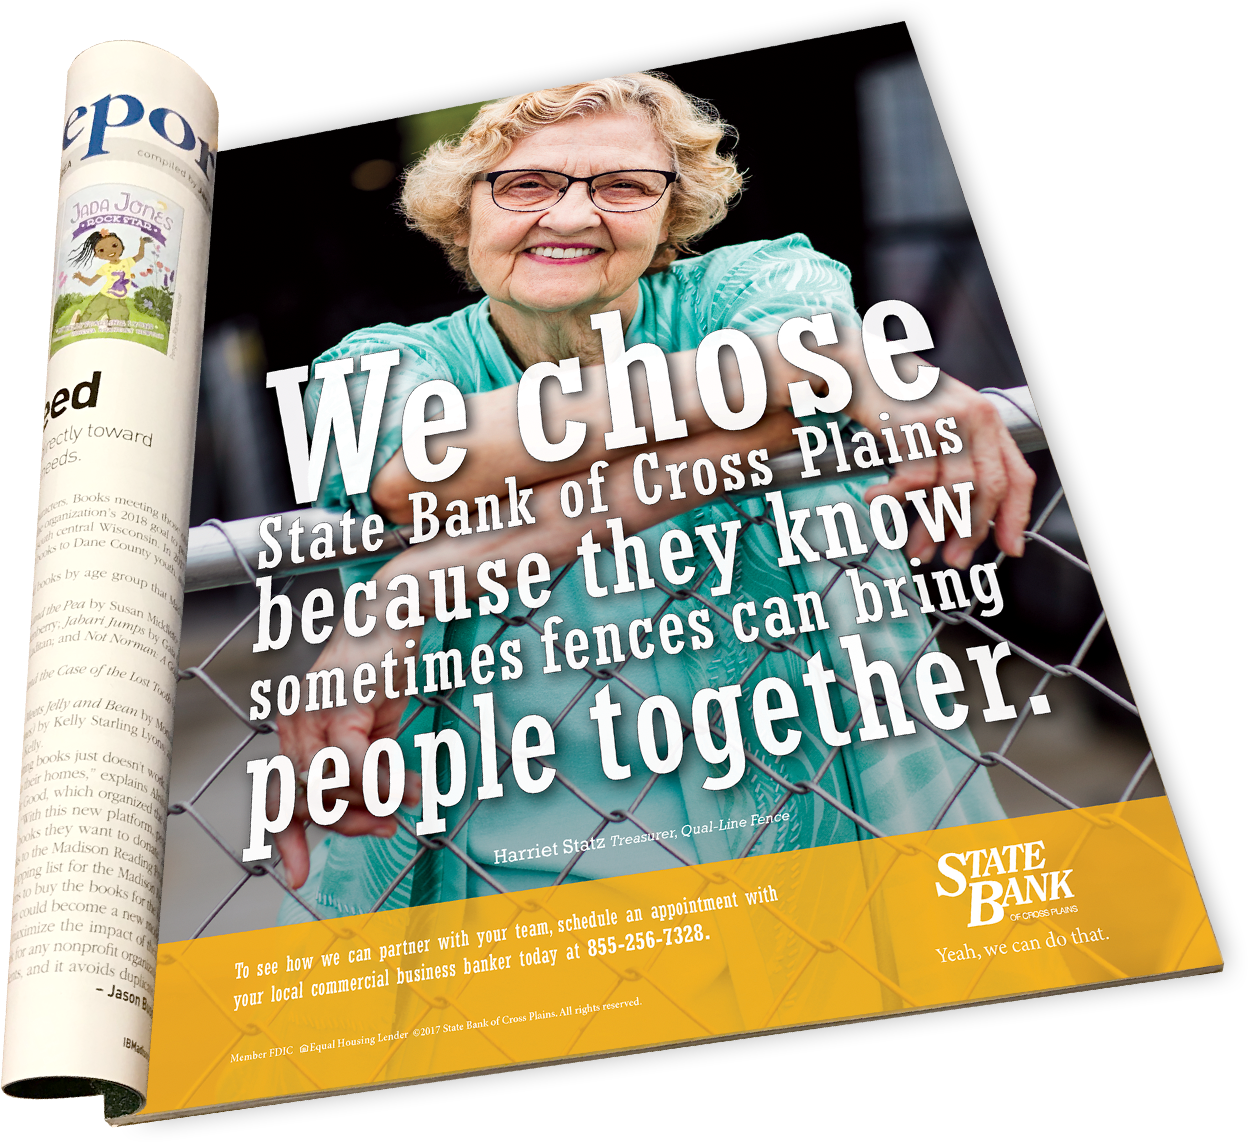 State Bank of Cross Plains magazine ad: We chose State Bank of Cross Plains because they know sometimes fences can bring people together.